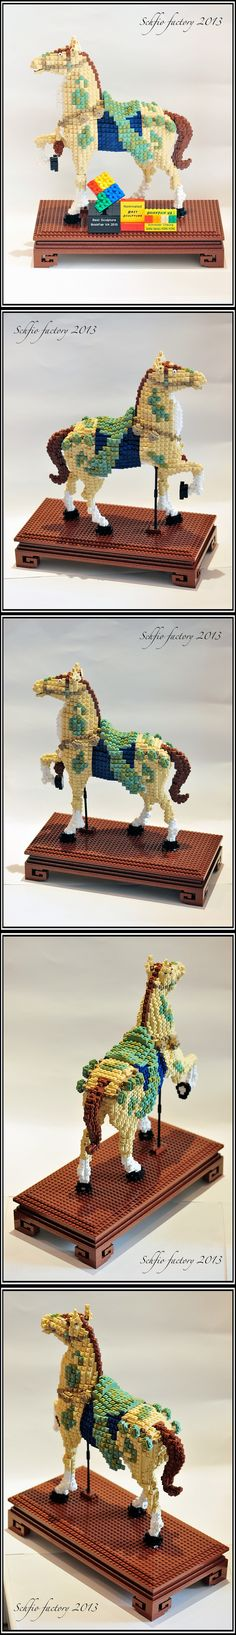 The LEGO Tang Horse